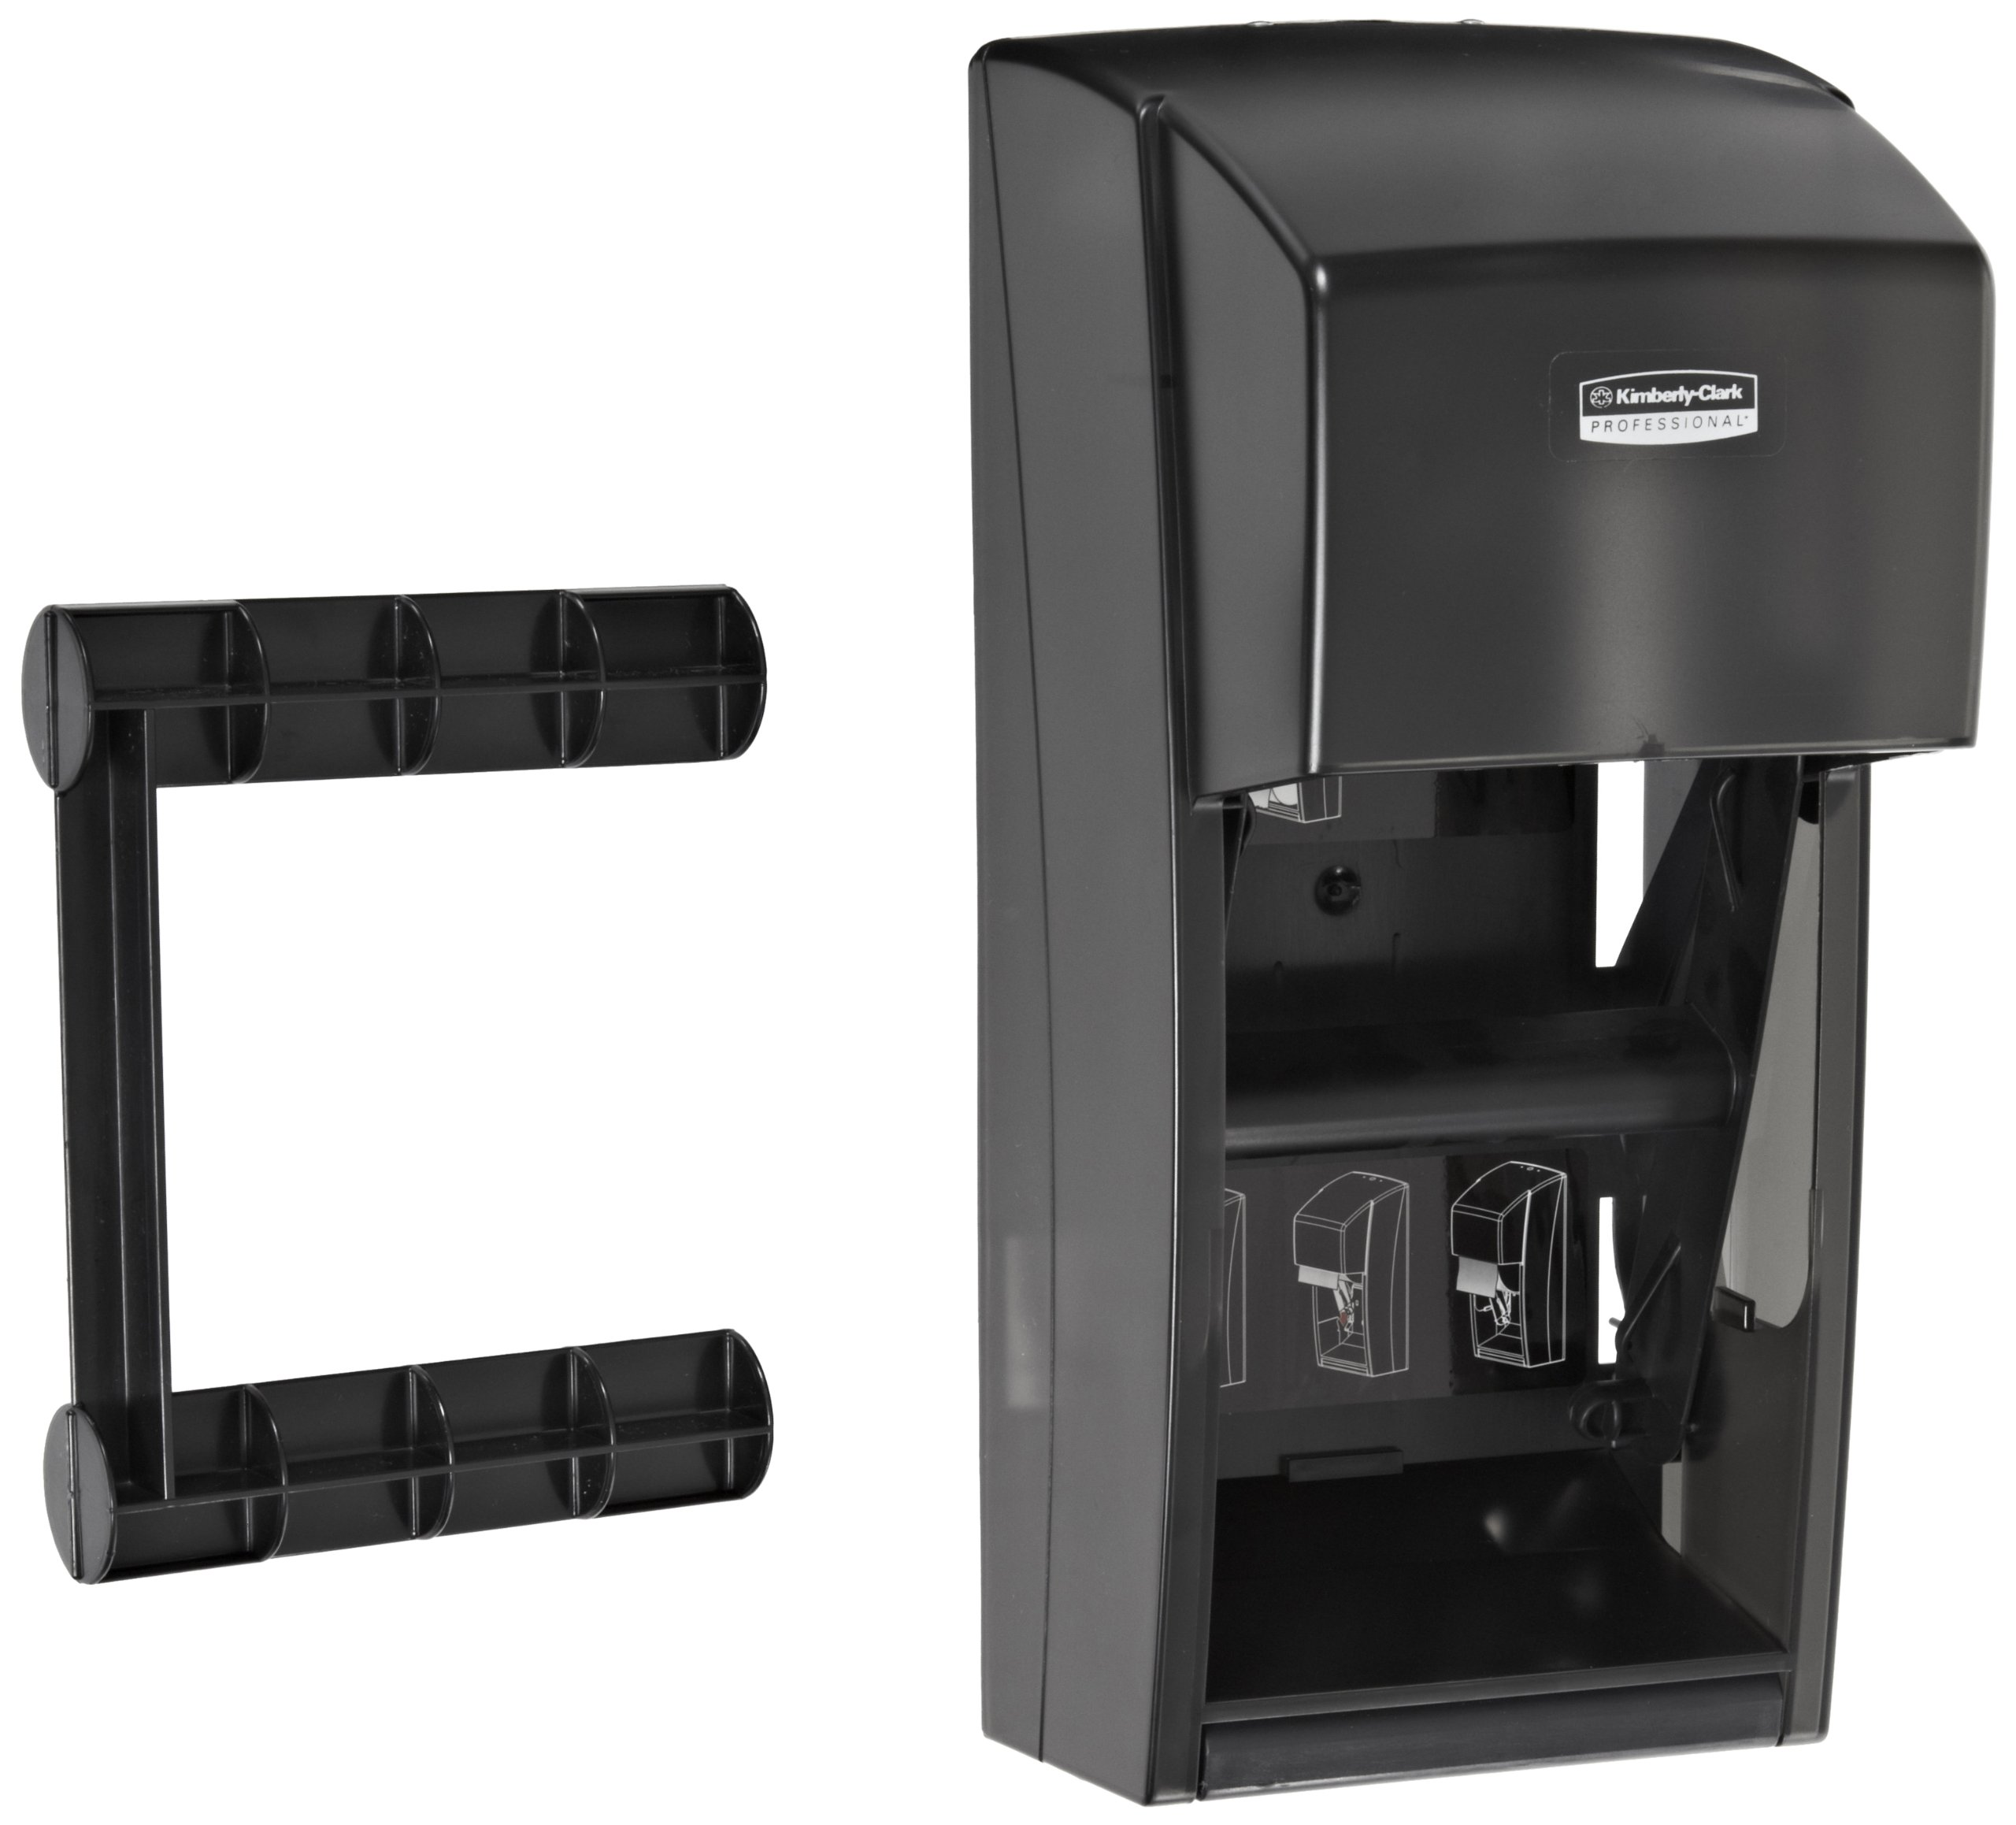 Kimberly Clark Professional Double Roll Toilet Paper Dispenser (09021), Cored or Coreless Standard Roll Compatible, Smoke (Black) by Kimberly-Clark Professional (Image #2)